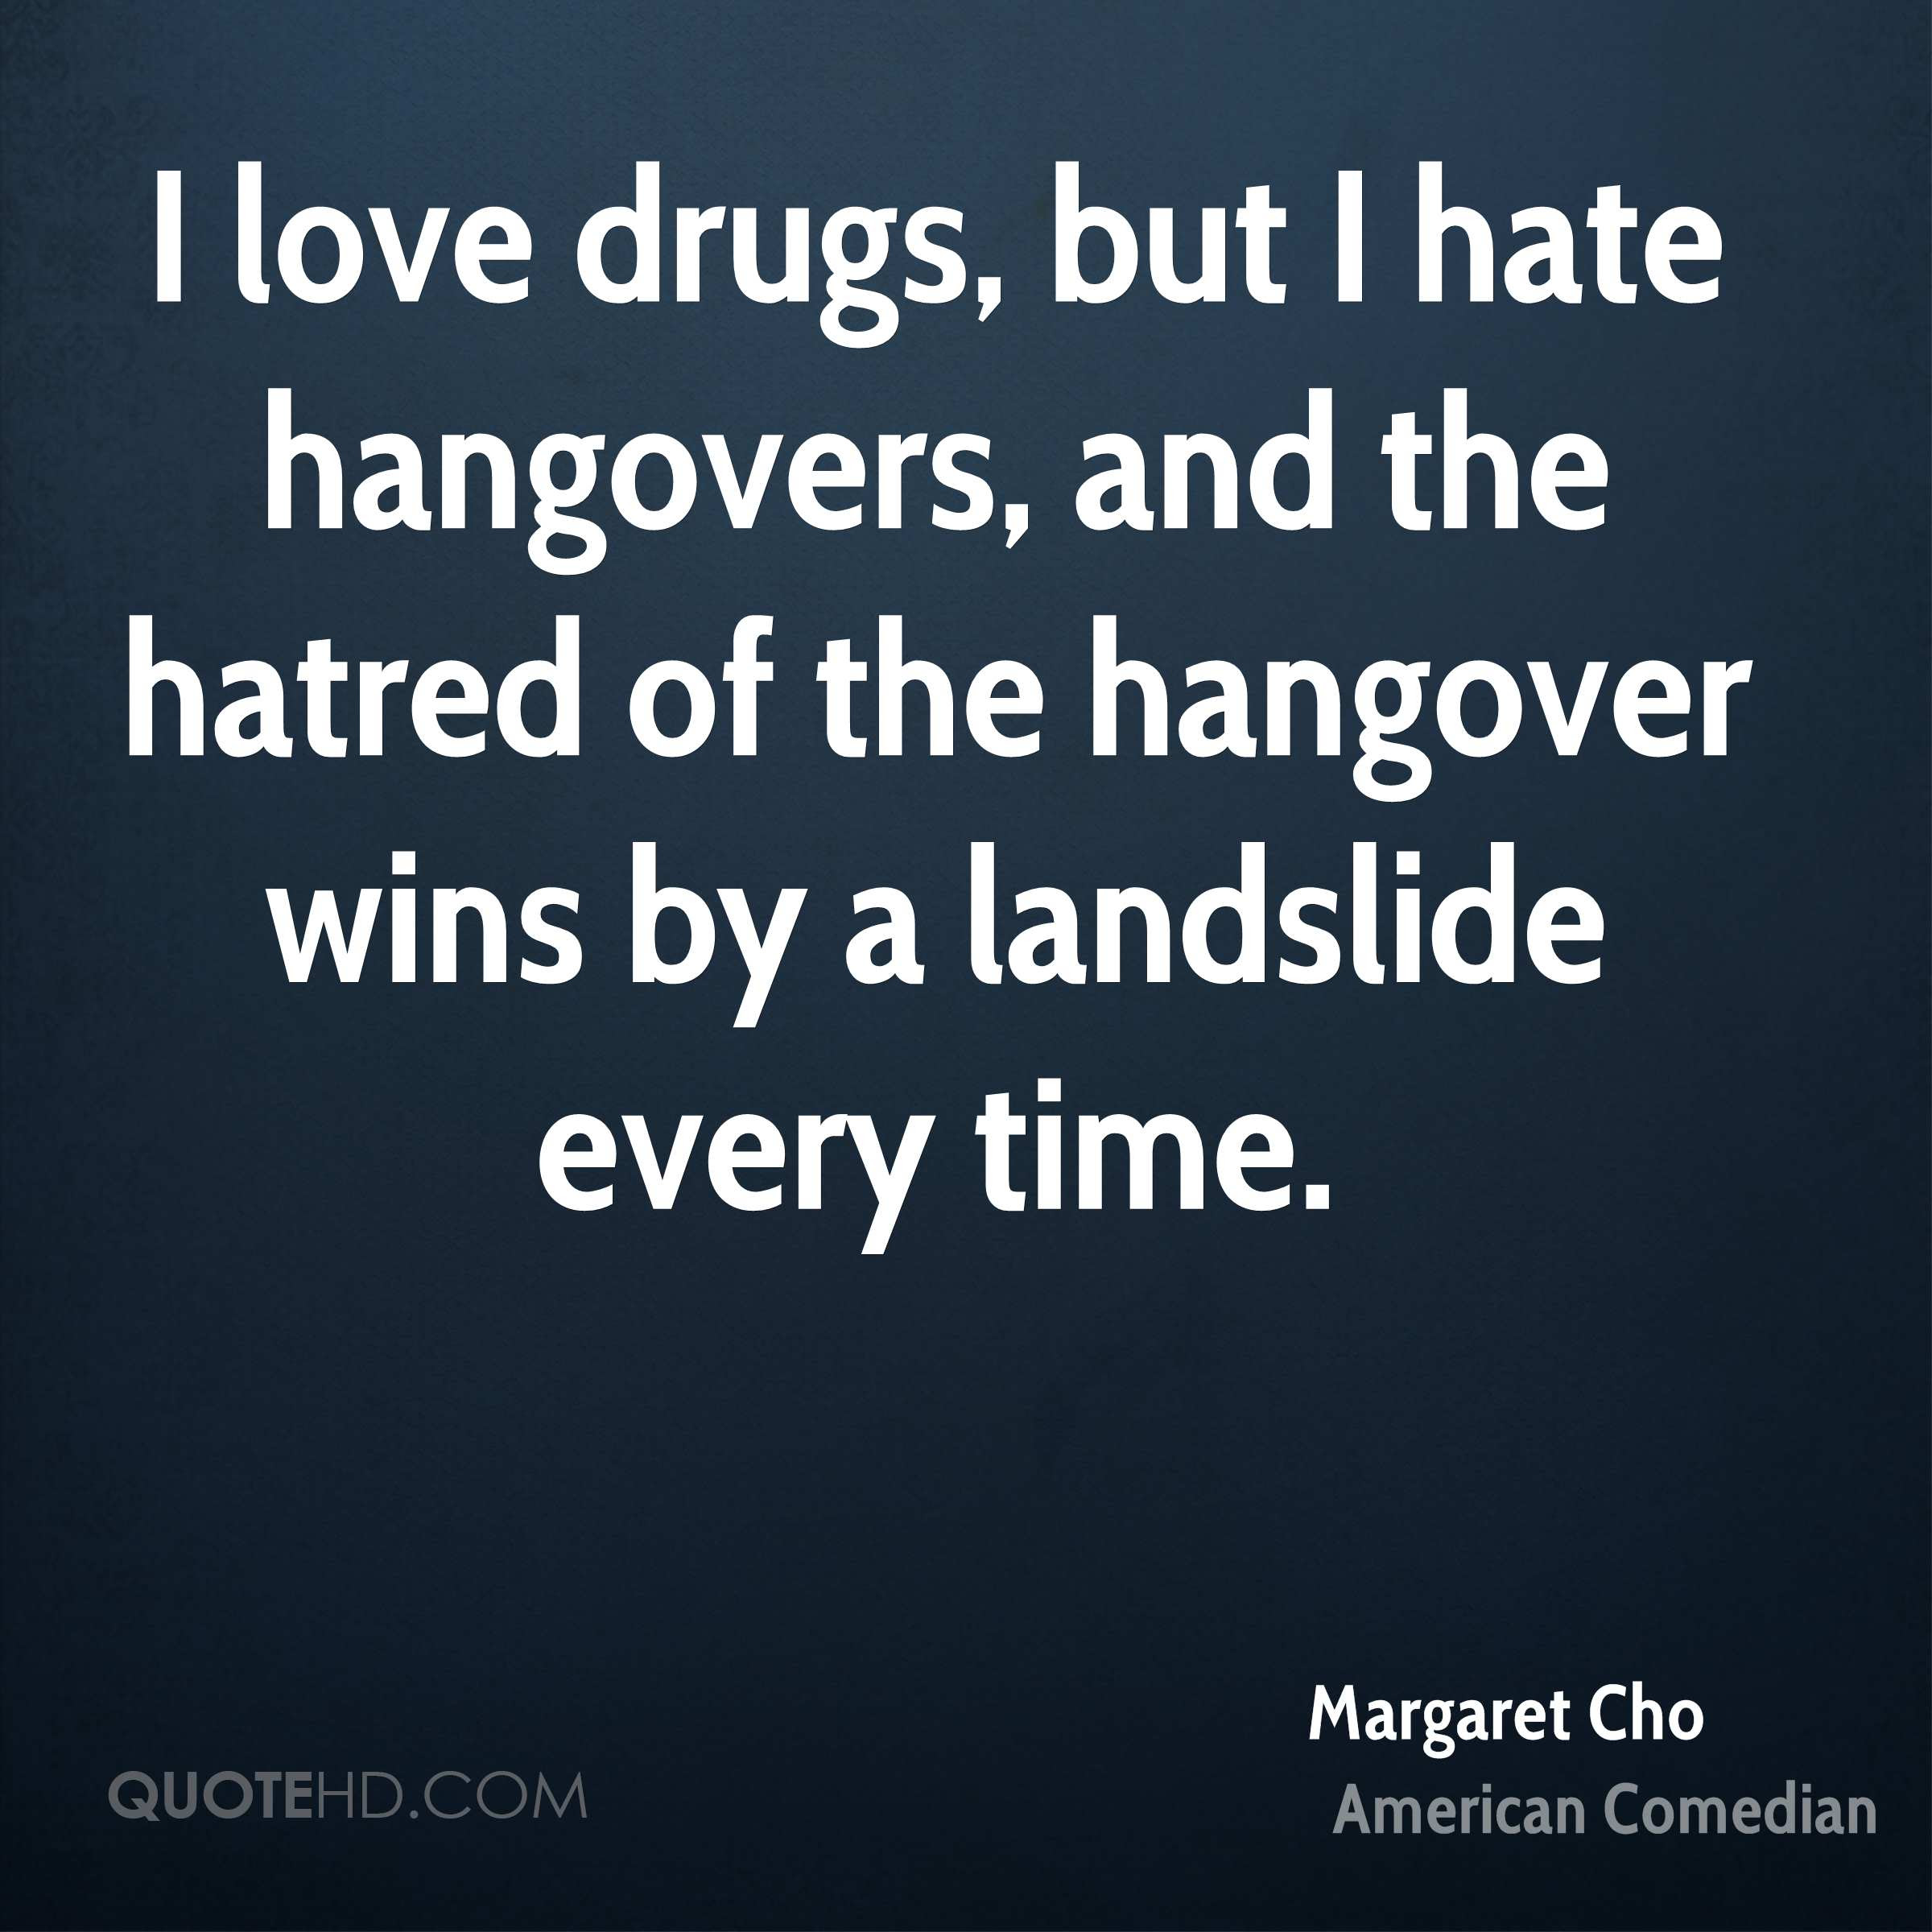 Margaret Cho Quotes Quotehd